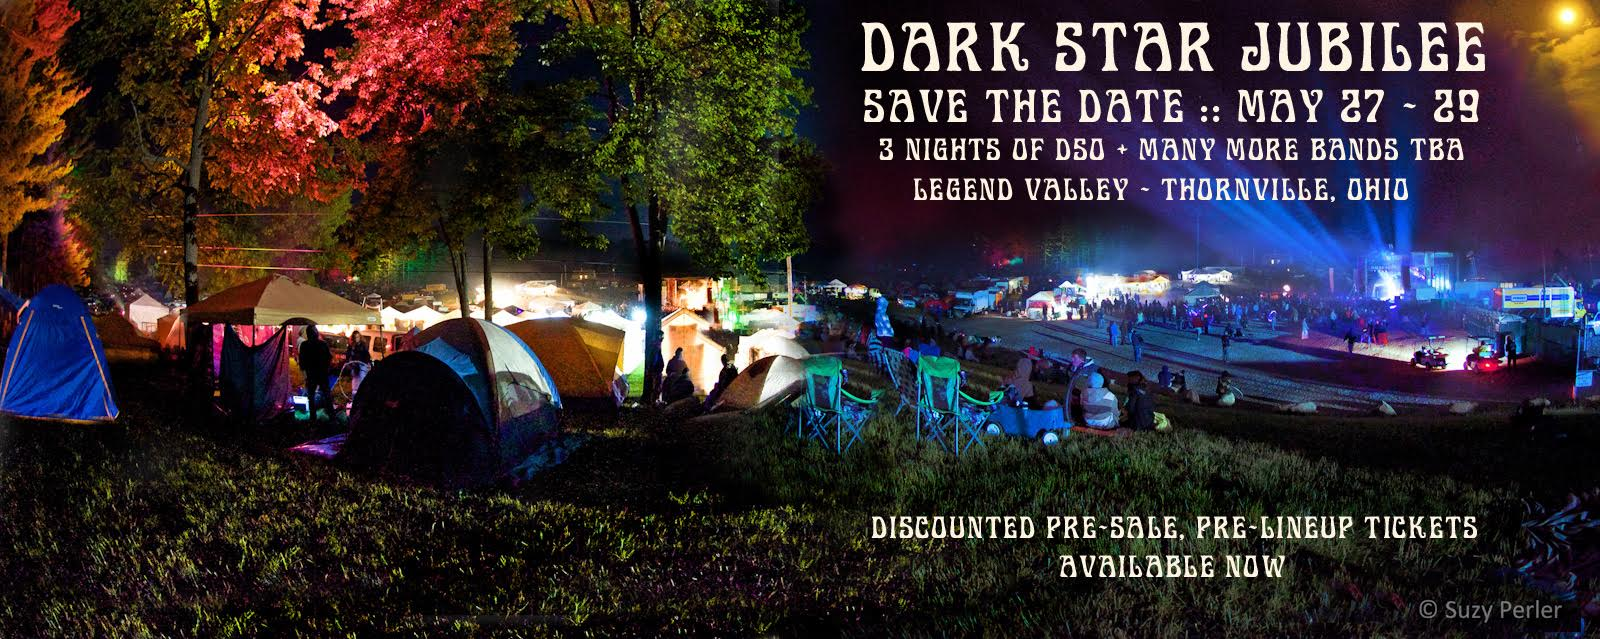 Dark Star Orchestra Announces 5th Annual Dark Star Jubilee